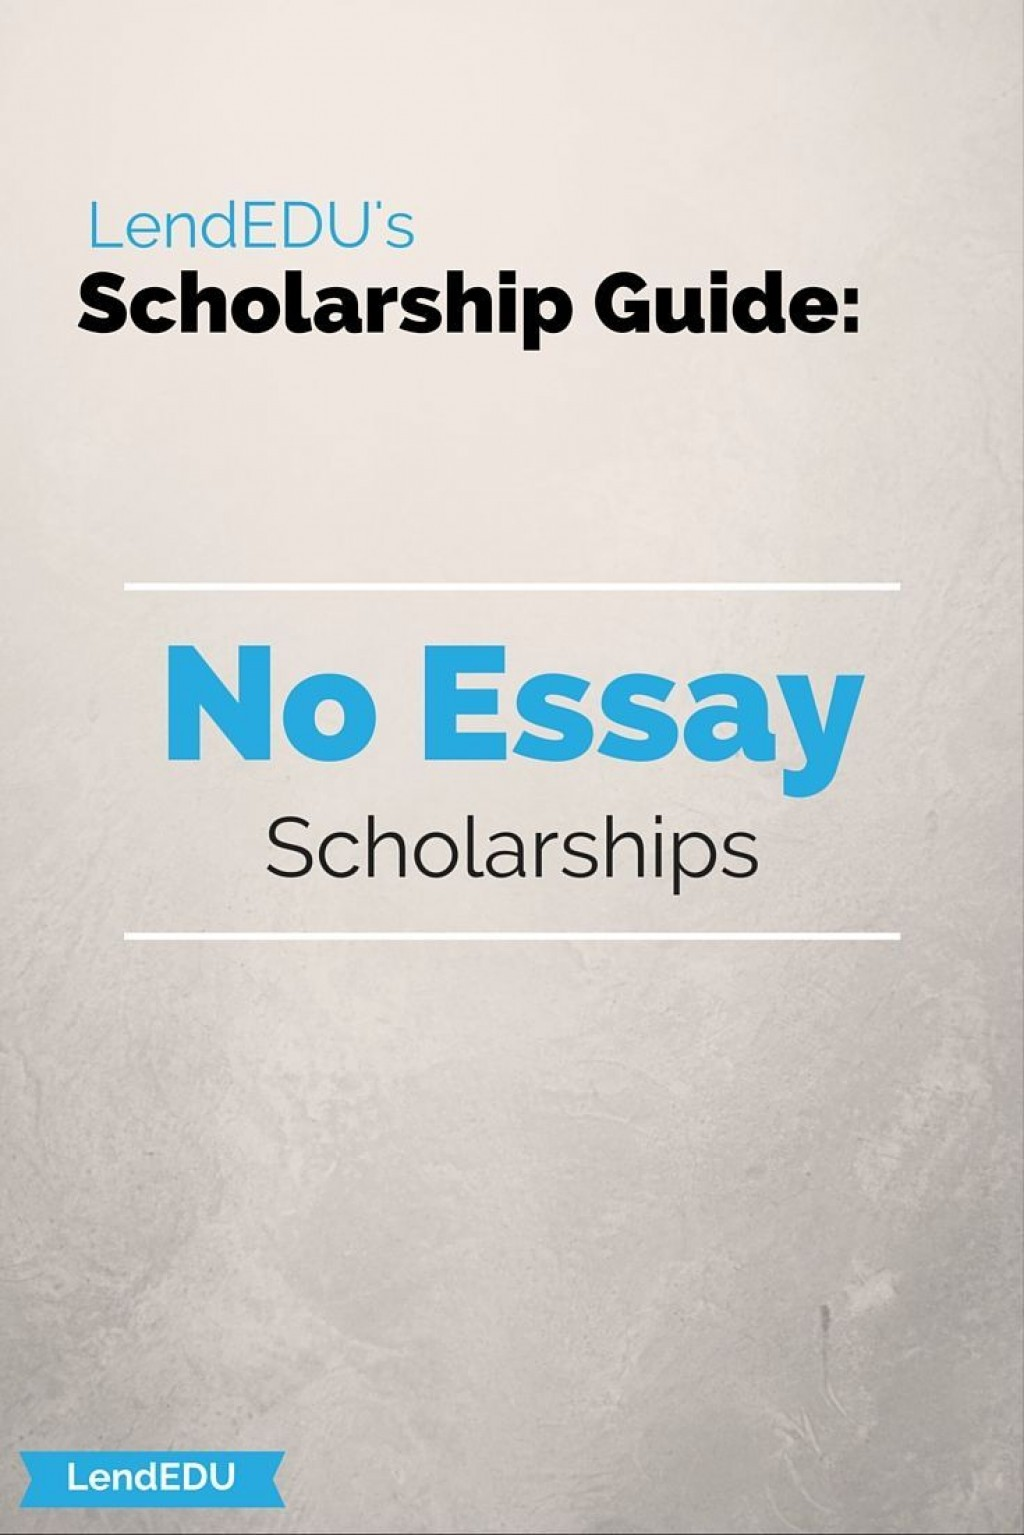 017 Scholarships No Essay Best 2019 For High School Seniors 2017 Large